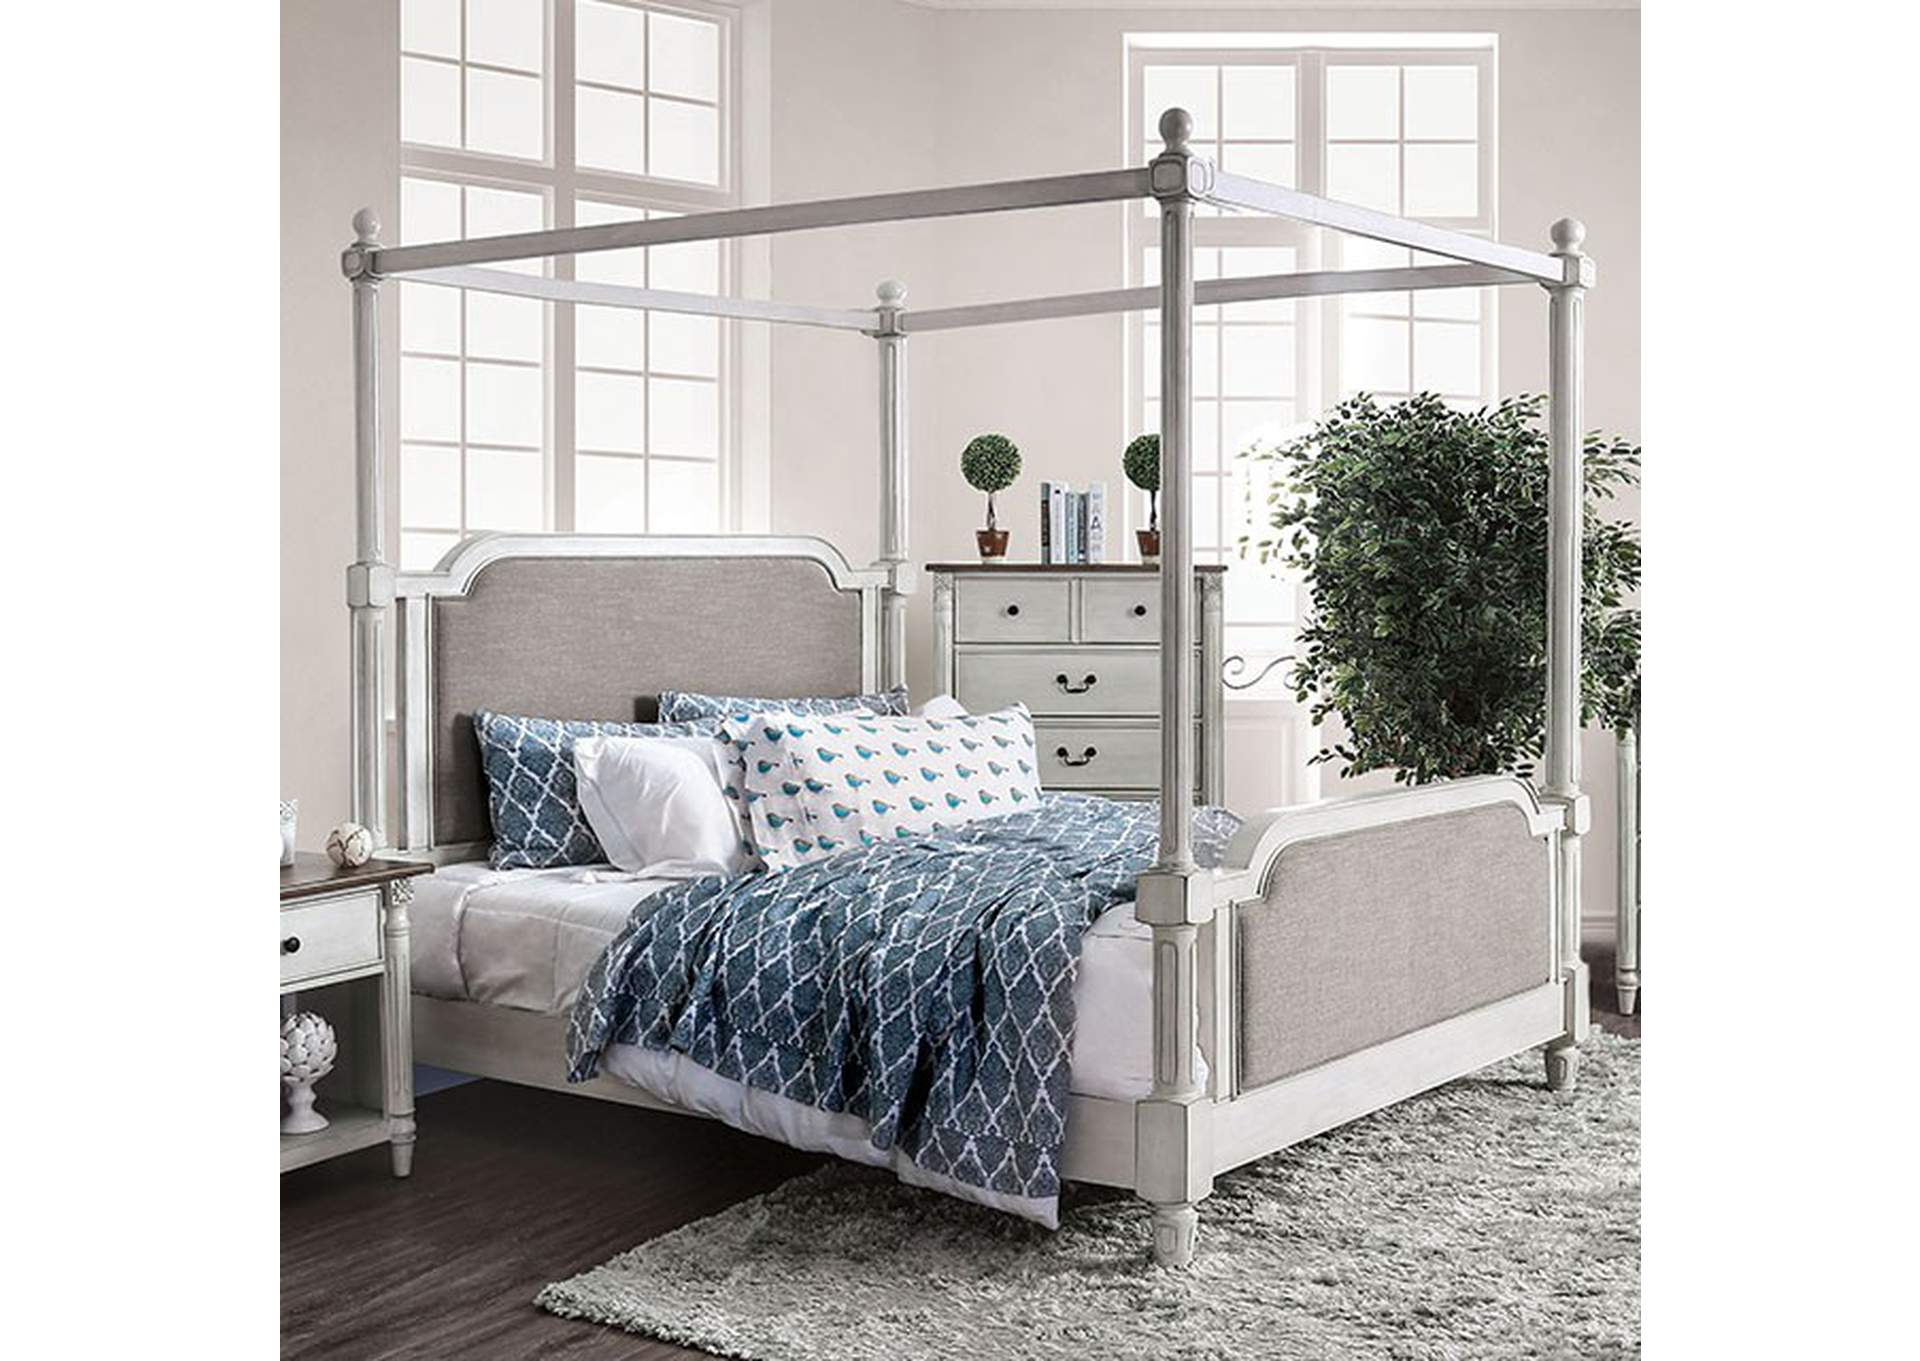 Lansford California King Bed,Furniture of America